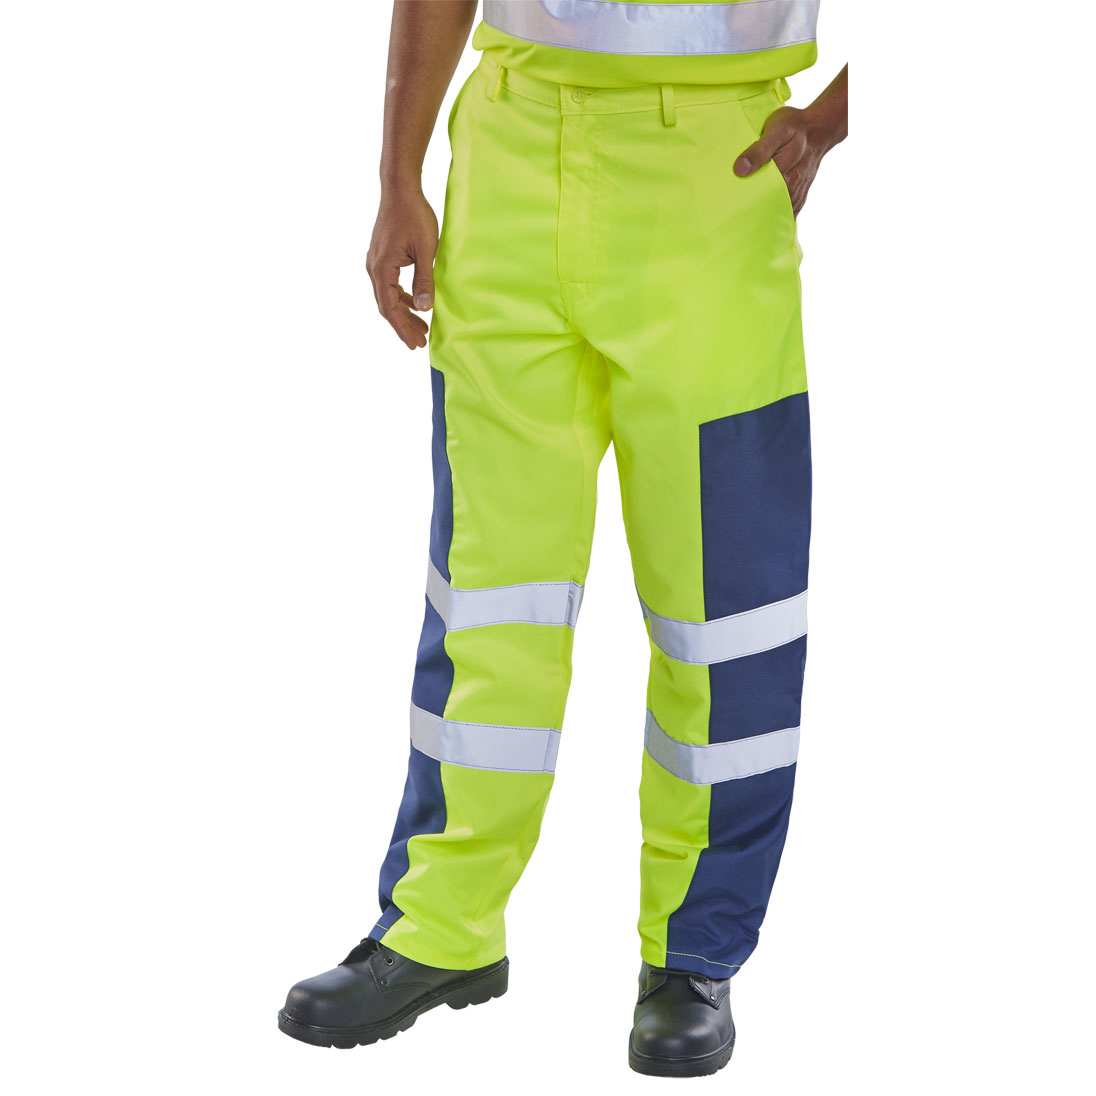 Click Workwear Trousers Hi-Vis Nylon Patch Yellow/Navy Blue 34 Ref PCTSYNNP34 *Up to 3 Day Leadtime*